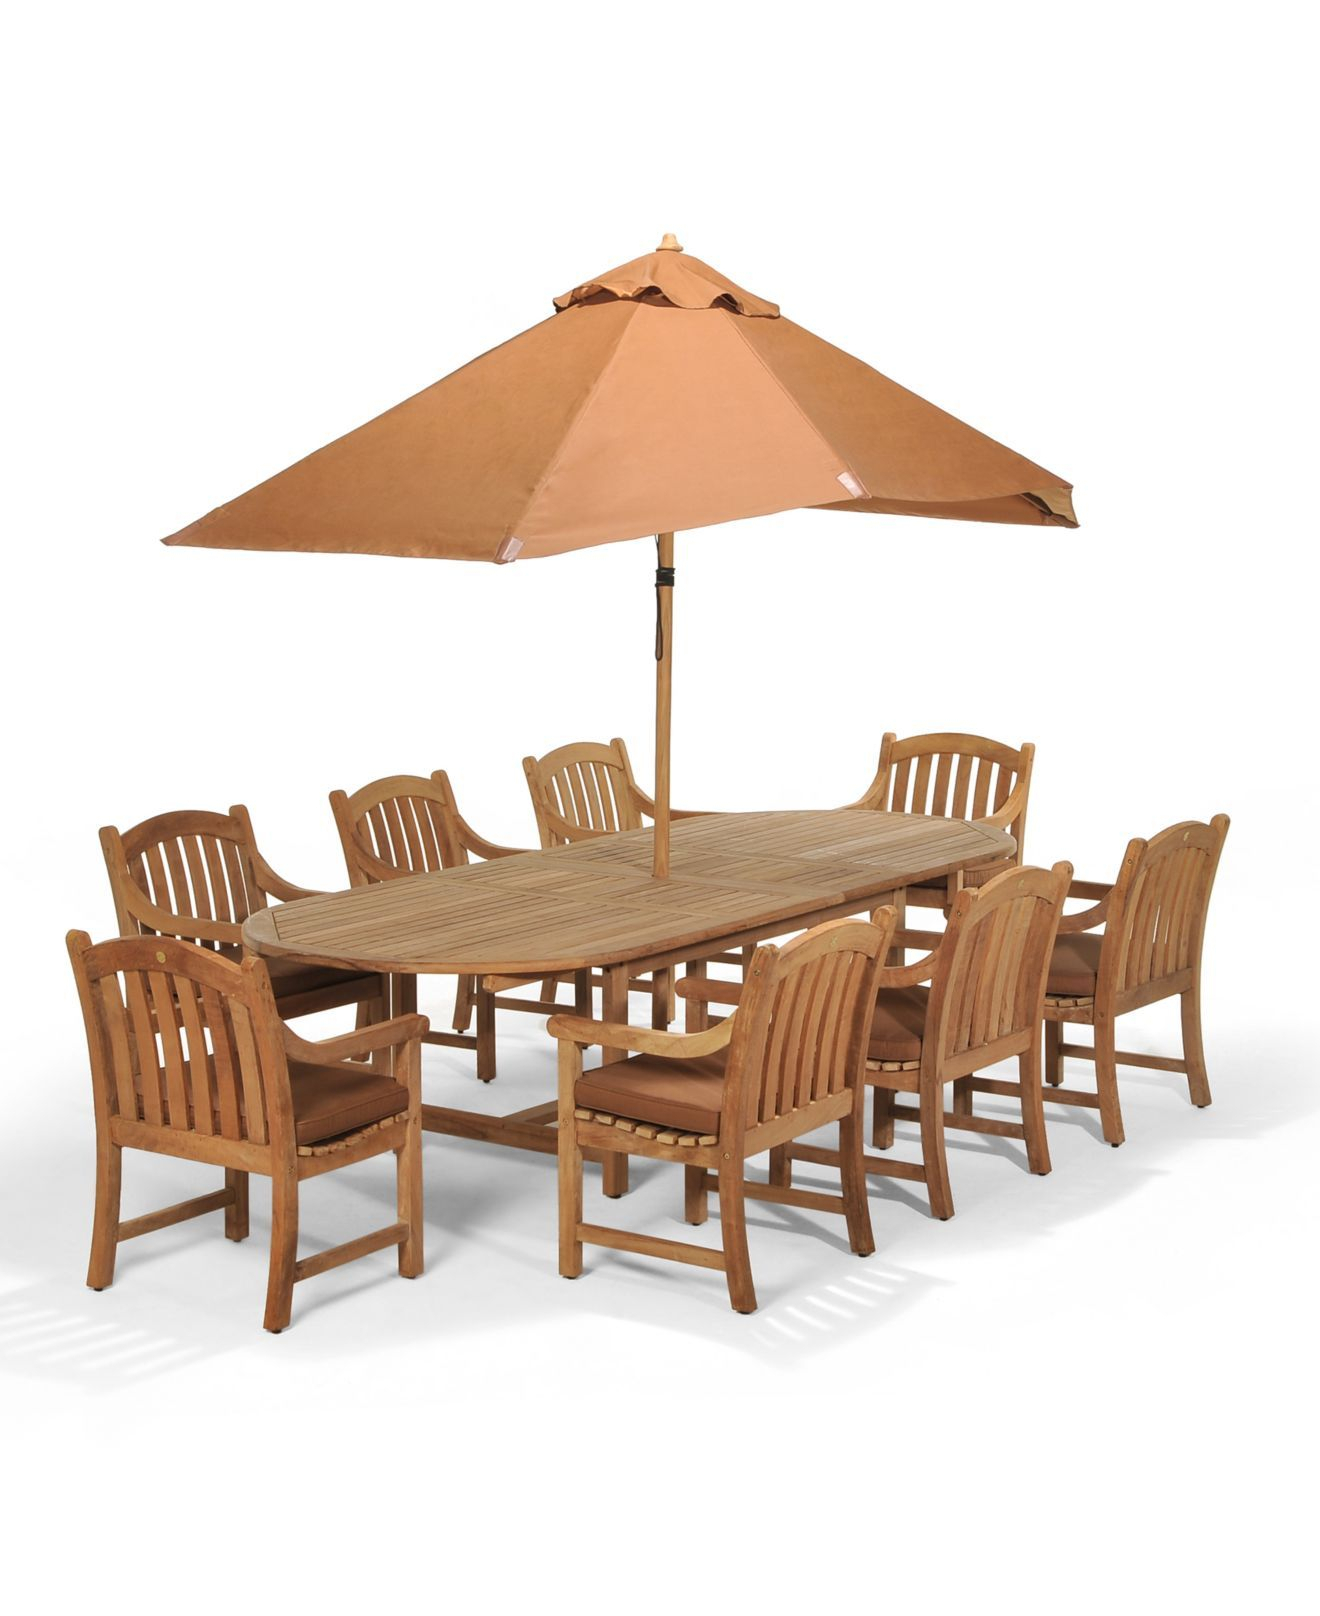 Bristol Outdoor Patio Furniture   Patio Furniture In 4Pc French Seamed Sectional Sofas Oblong Mustard (View 12 of 15)